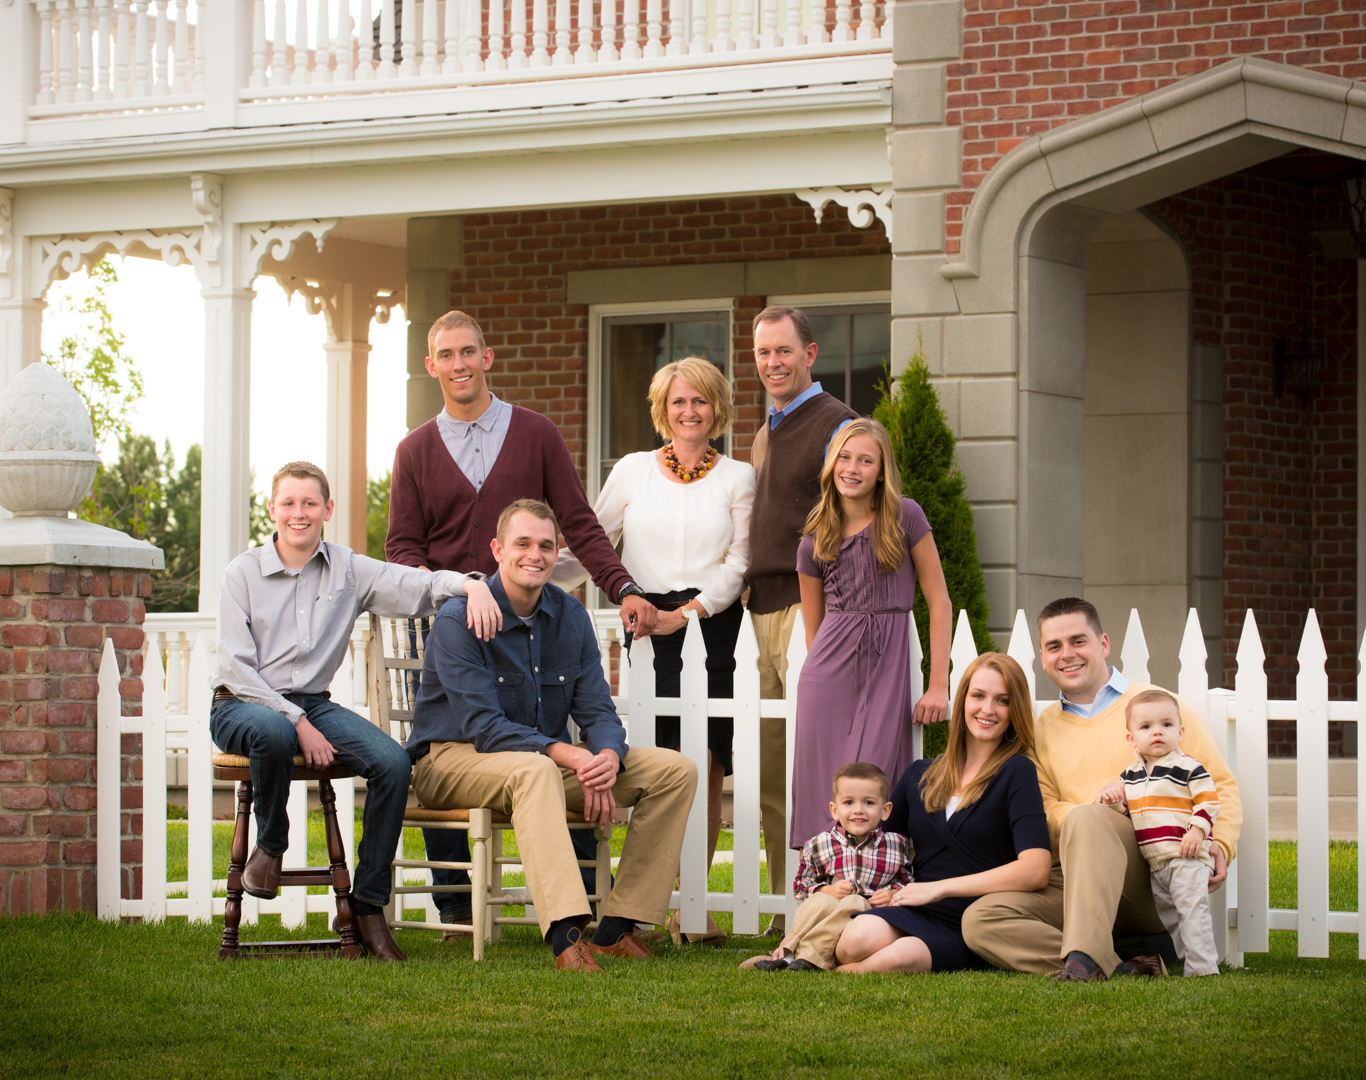 family picture home portrait outdoor utah fun salt Lake city